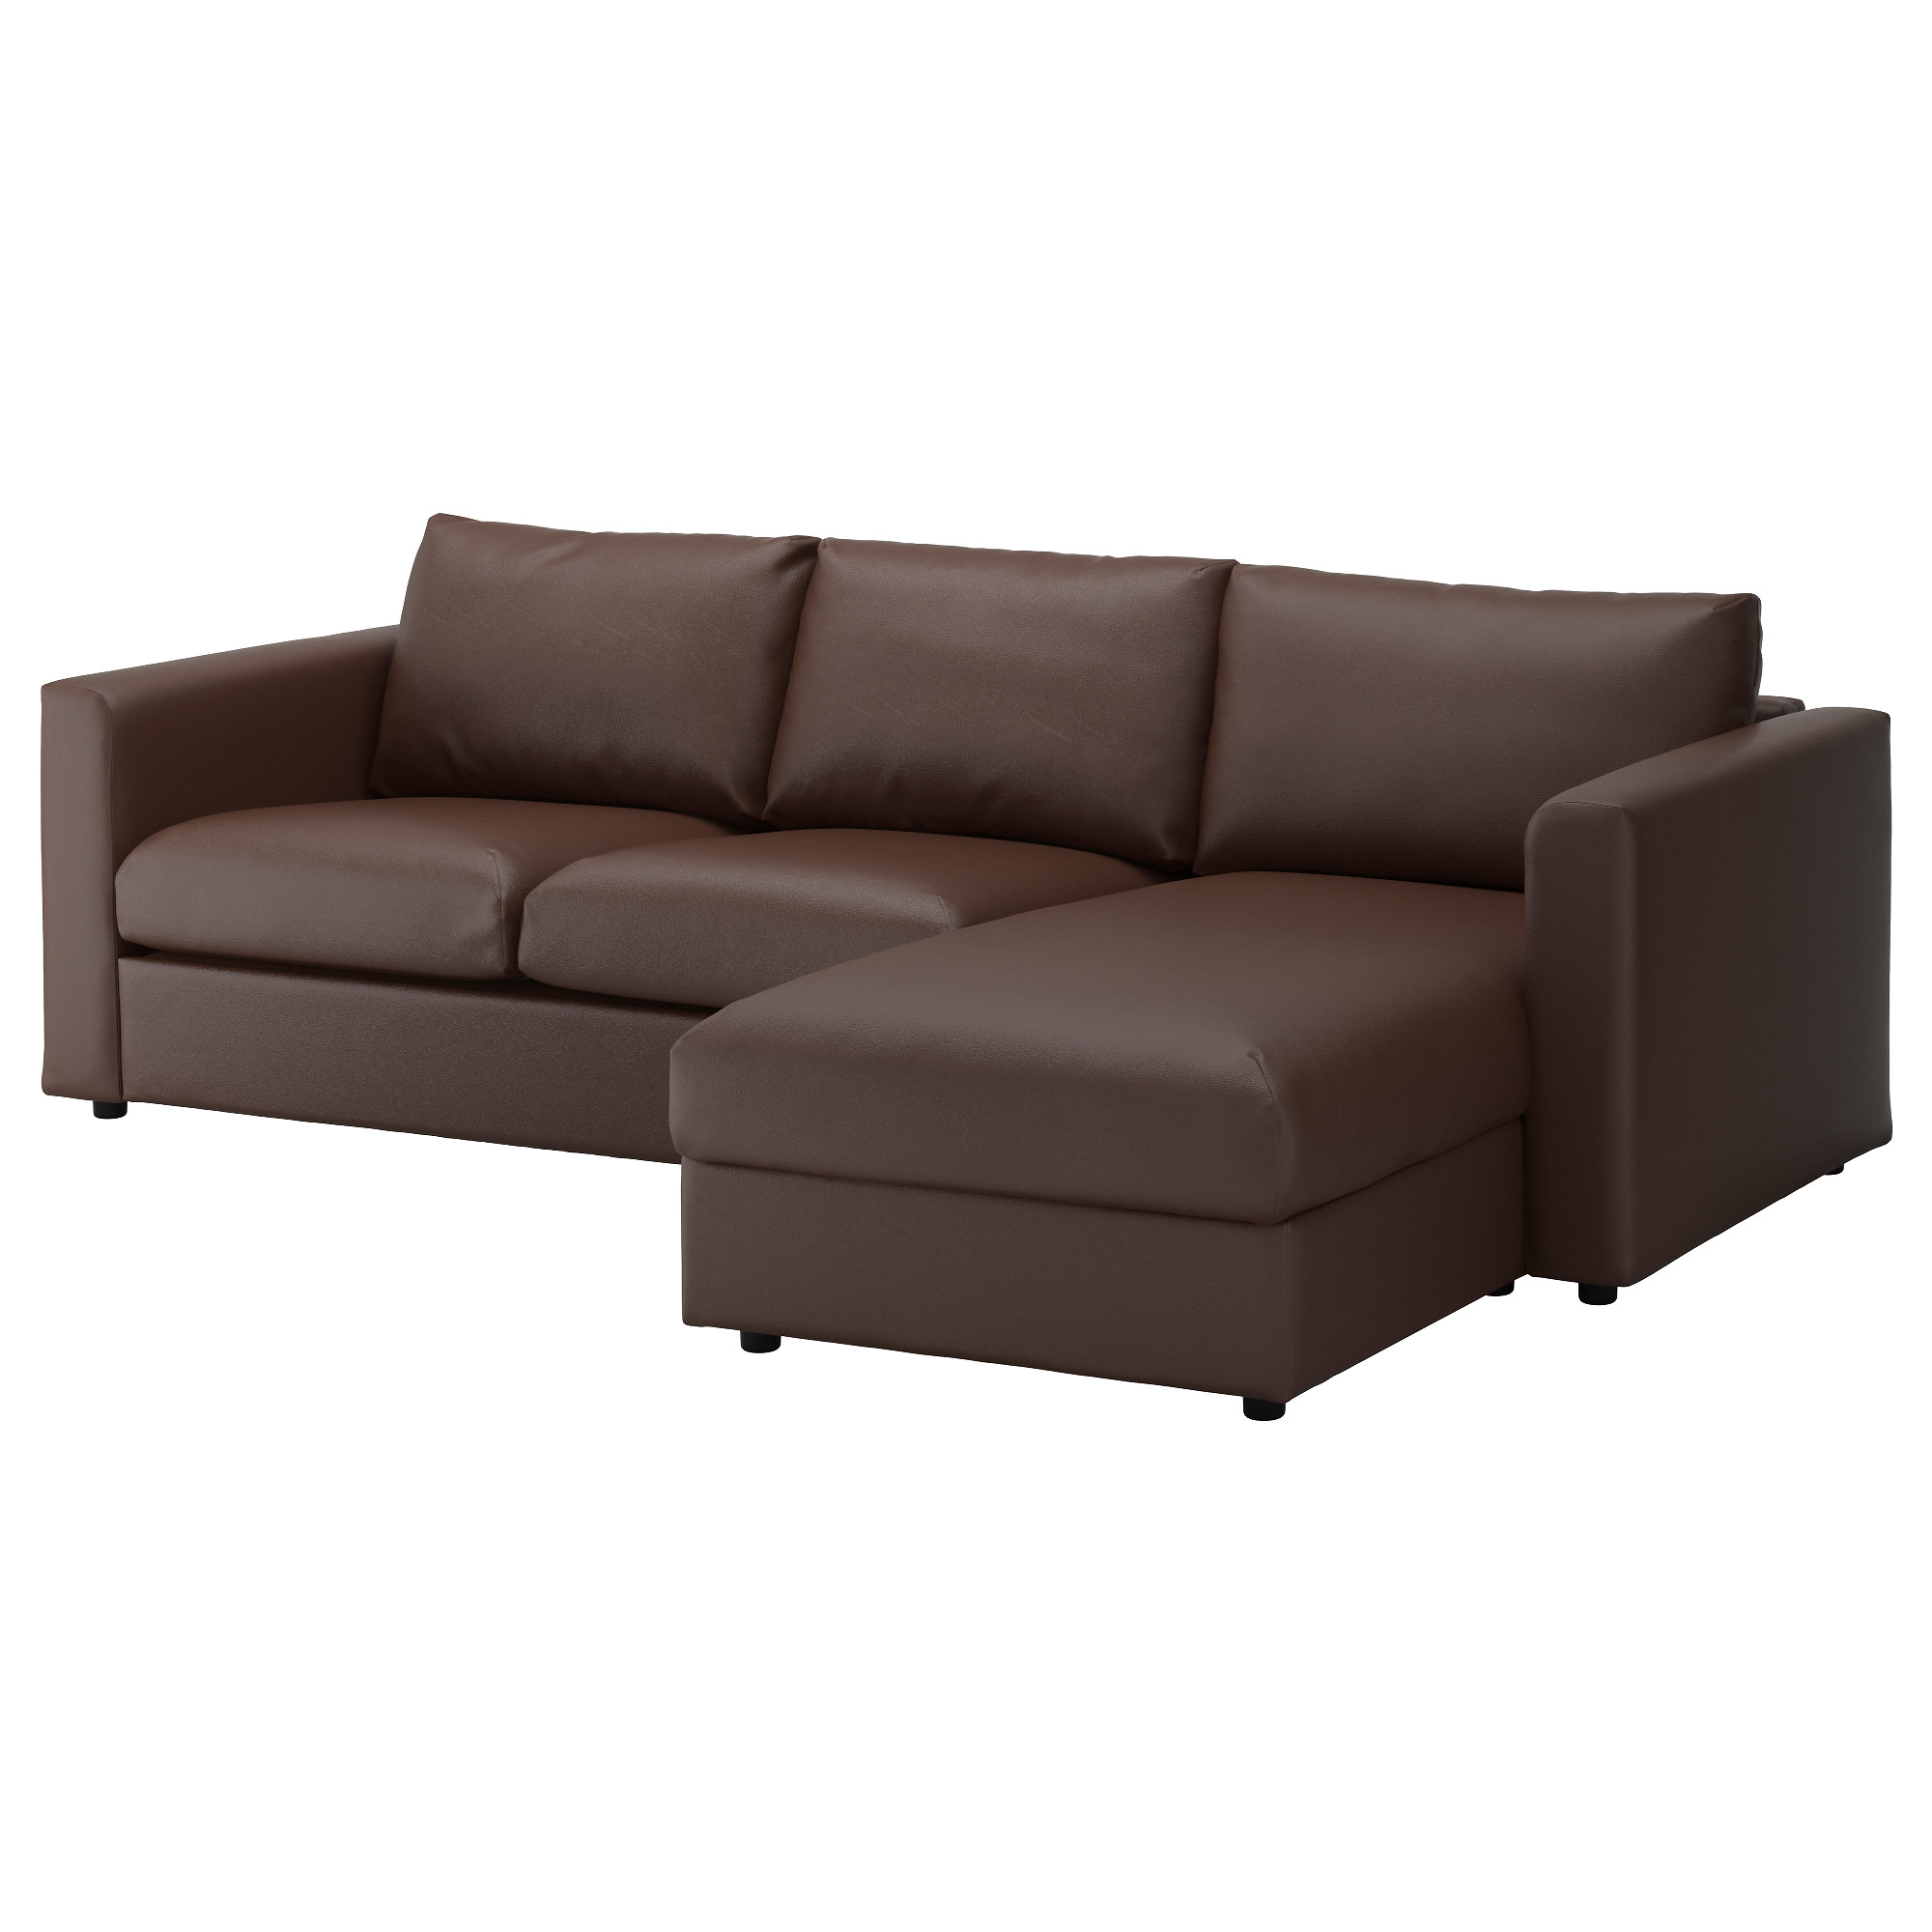 Sectional Sofas & Couches - IKEA